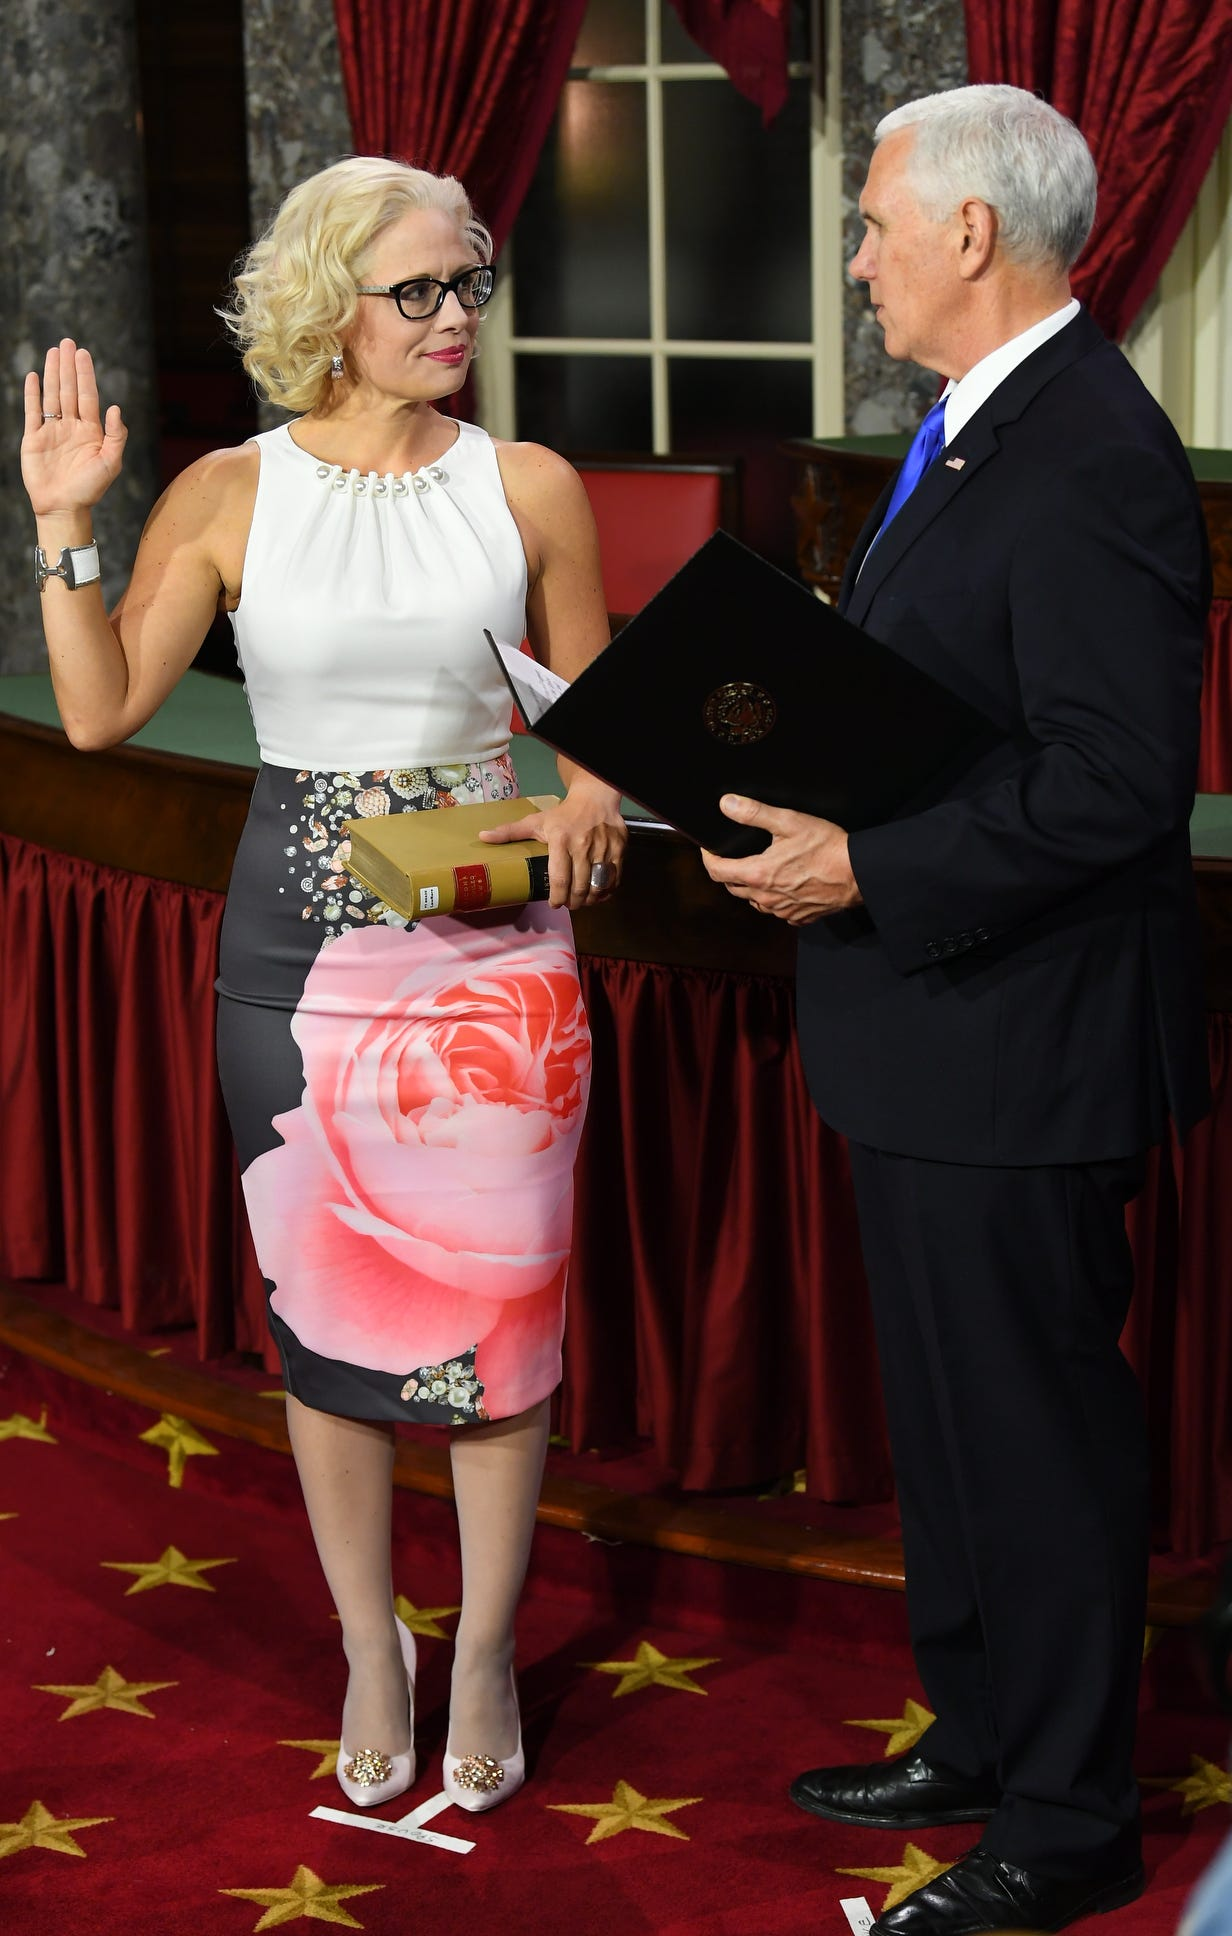 Senator Kyrsten Sinema (D-AZ) is the first openly bisexual candidate elected to the Sentate.  She chose to hold a law book for her swearing in, Thursday.